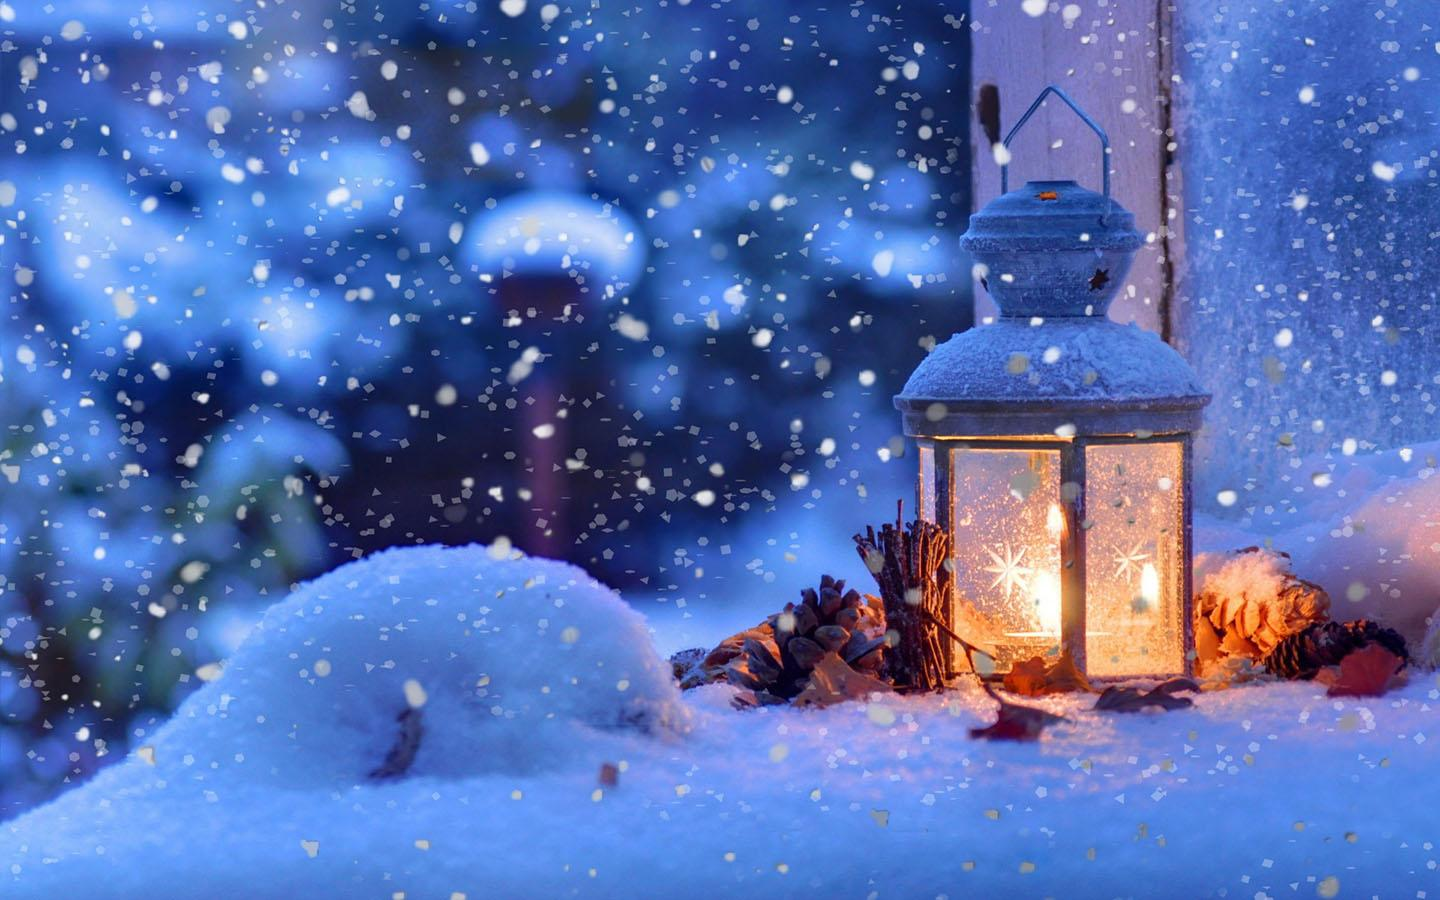 Snow Wallpaper Android Apps on Google Play